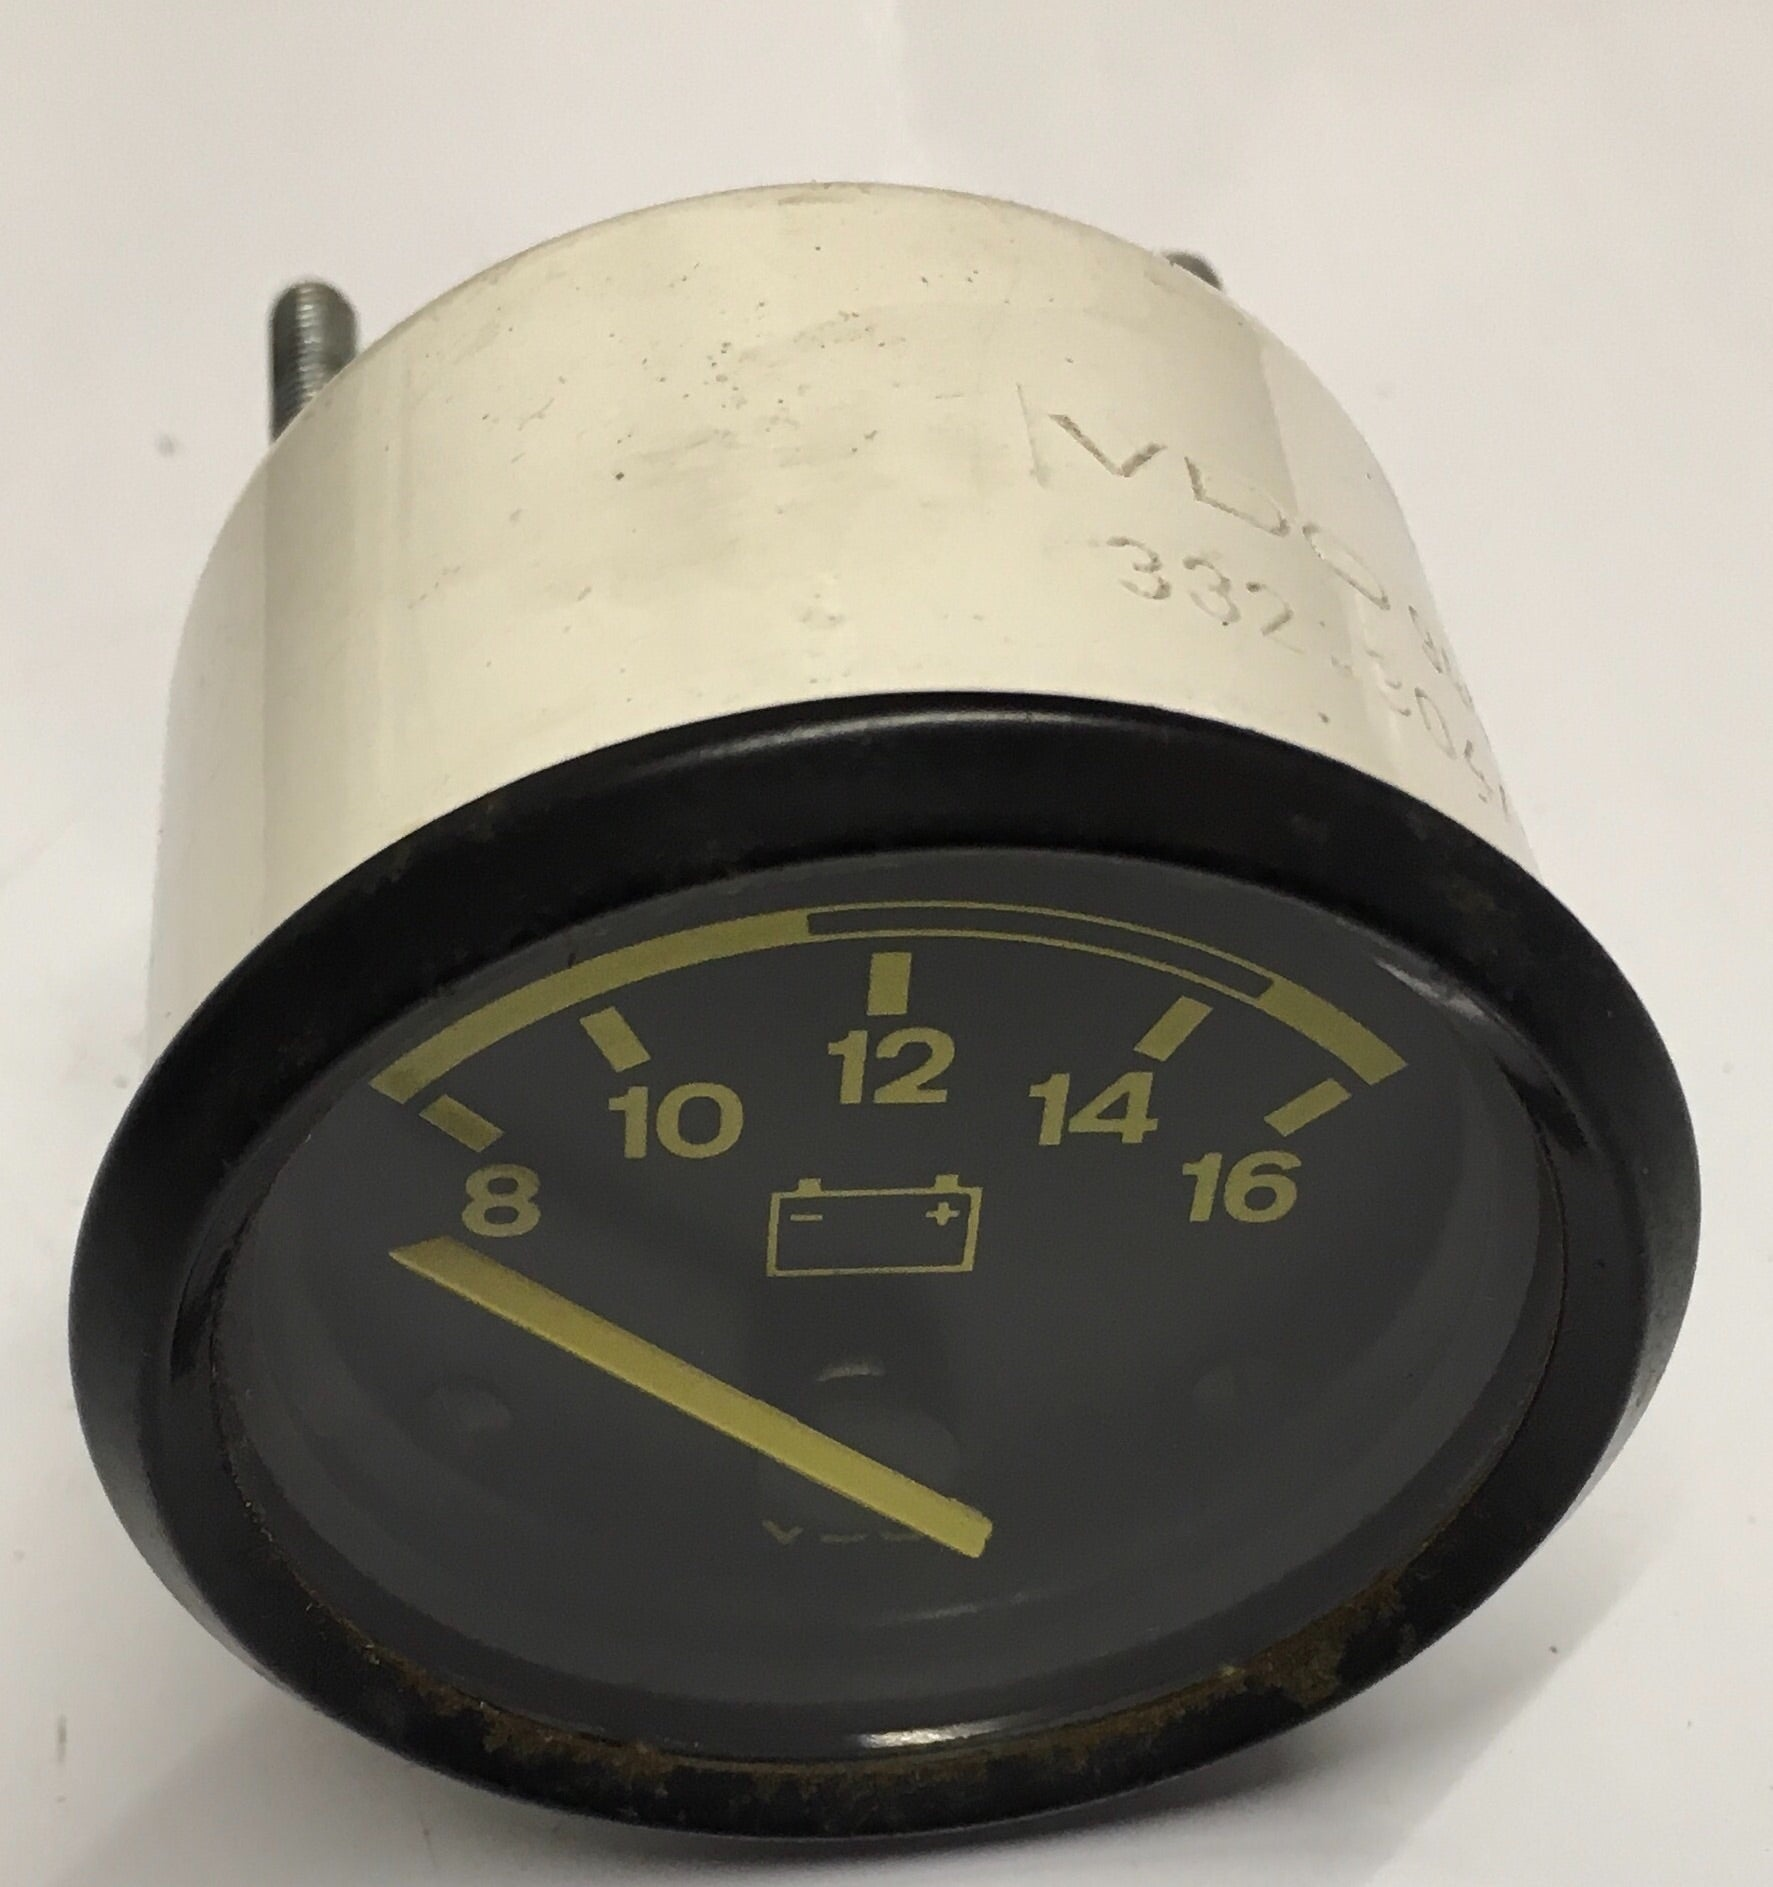 Porsche 924 944 voltmeter with yellow numbers. 94464111900. 944 641 119 00(( ref green 4)) - Woolies Workshop - Porsche 924 944 spares